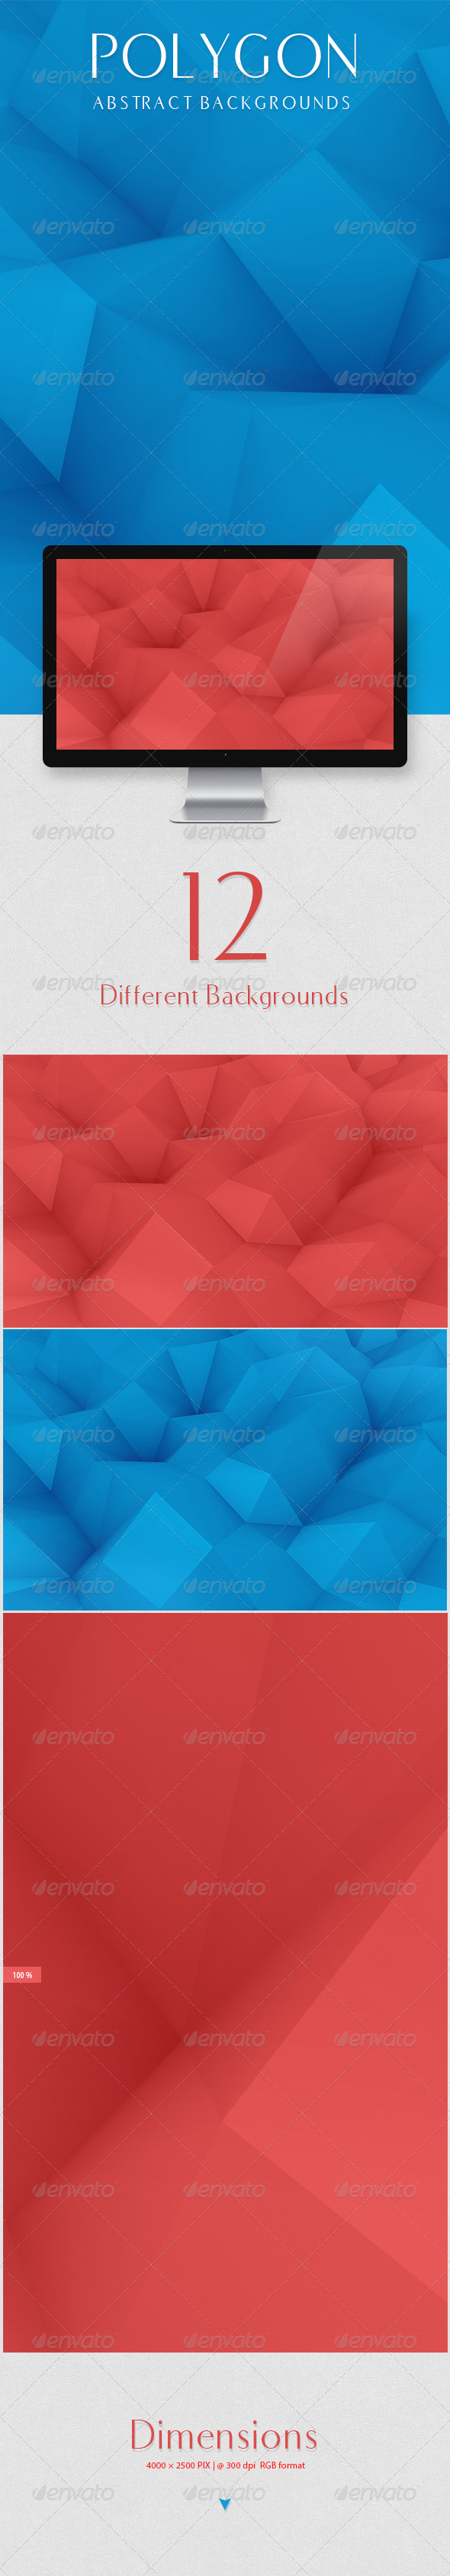 GraphicRiver Polygon Abstract Backgrounds 8679738